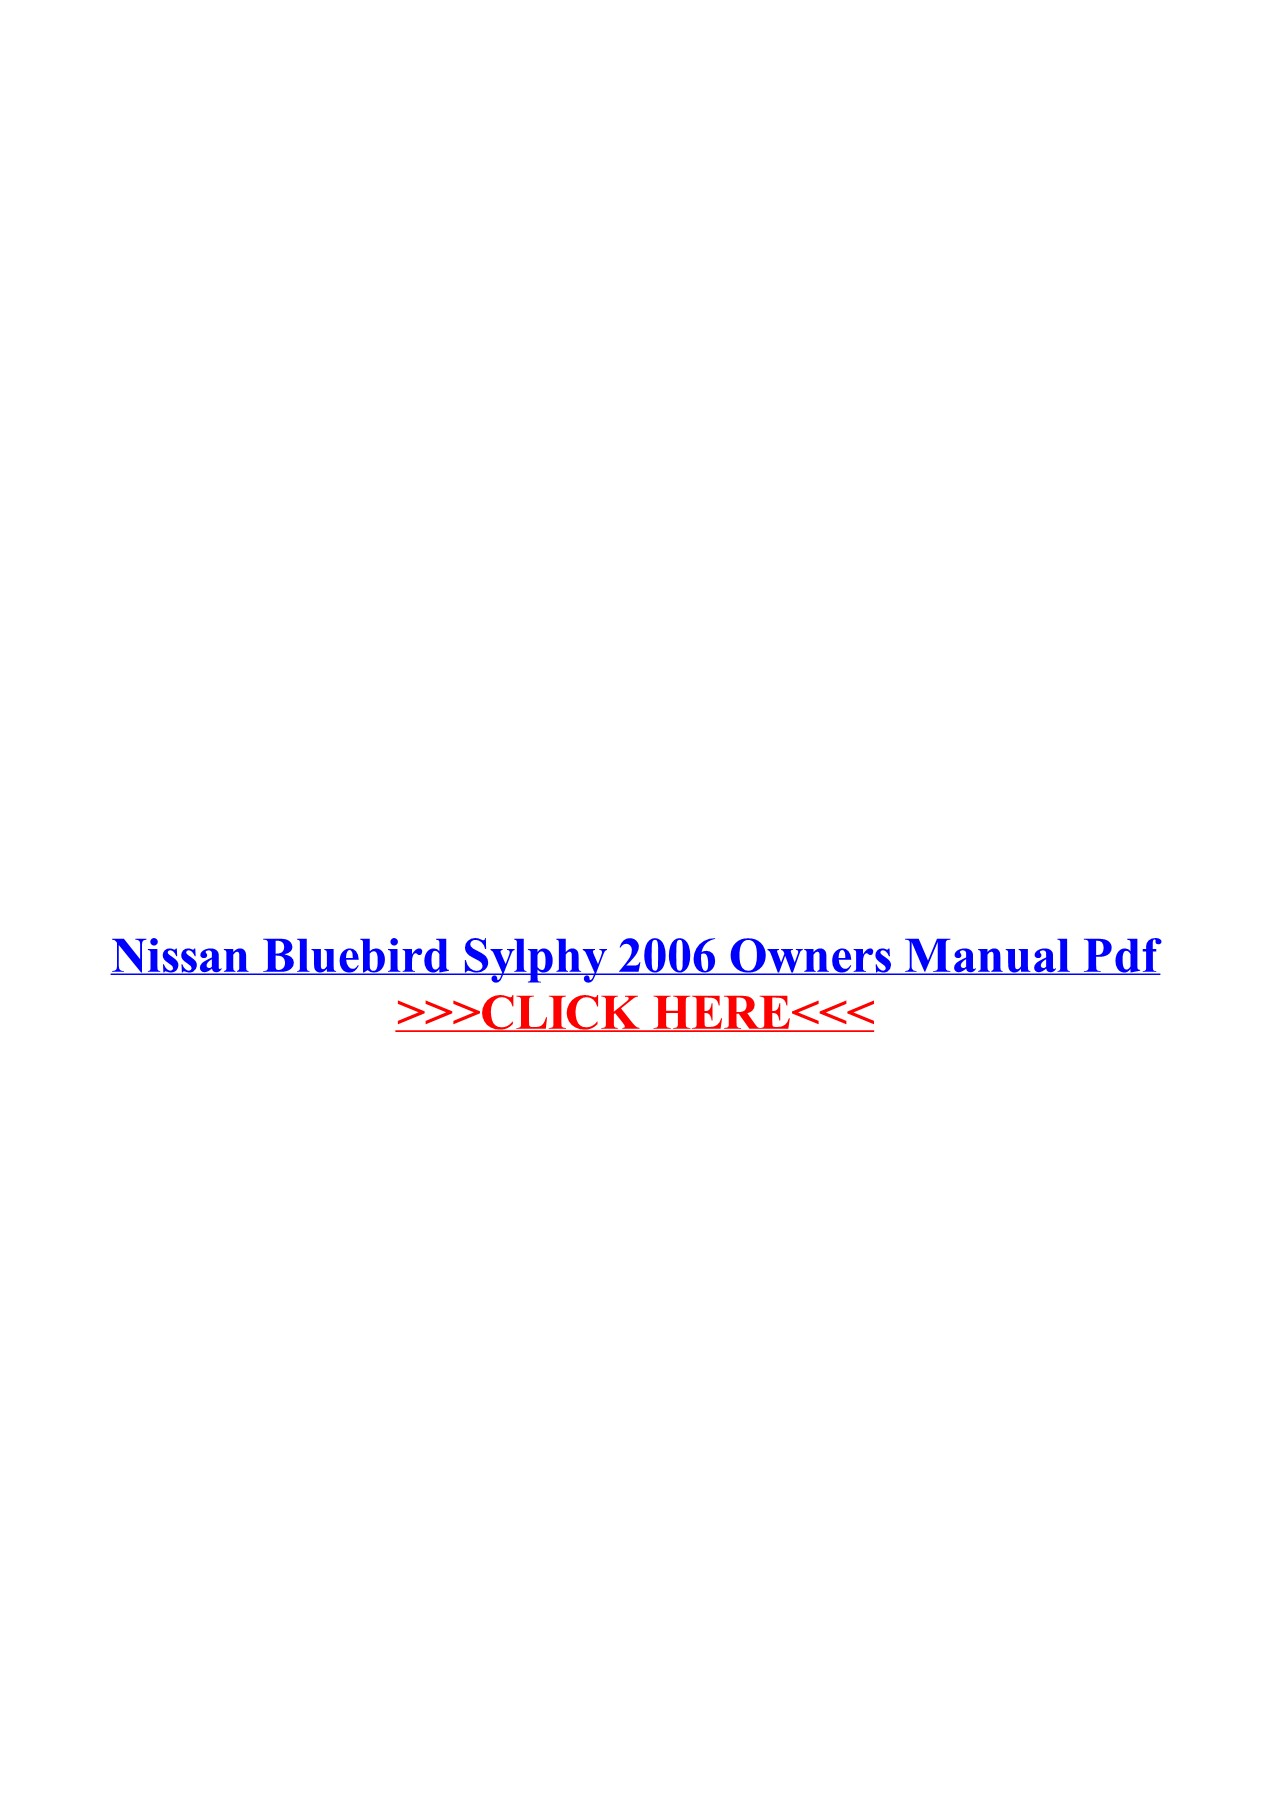 hight resolution of nissan bluebird sylphy 2006 owners manual pdf some call it an owner s manual an handbook a user handbook an operator s guide or nissan bluebird sylphy